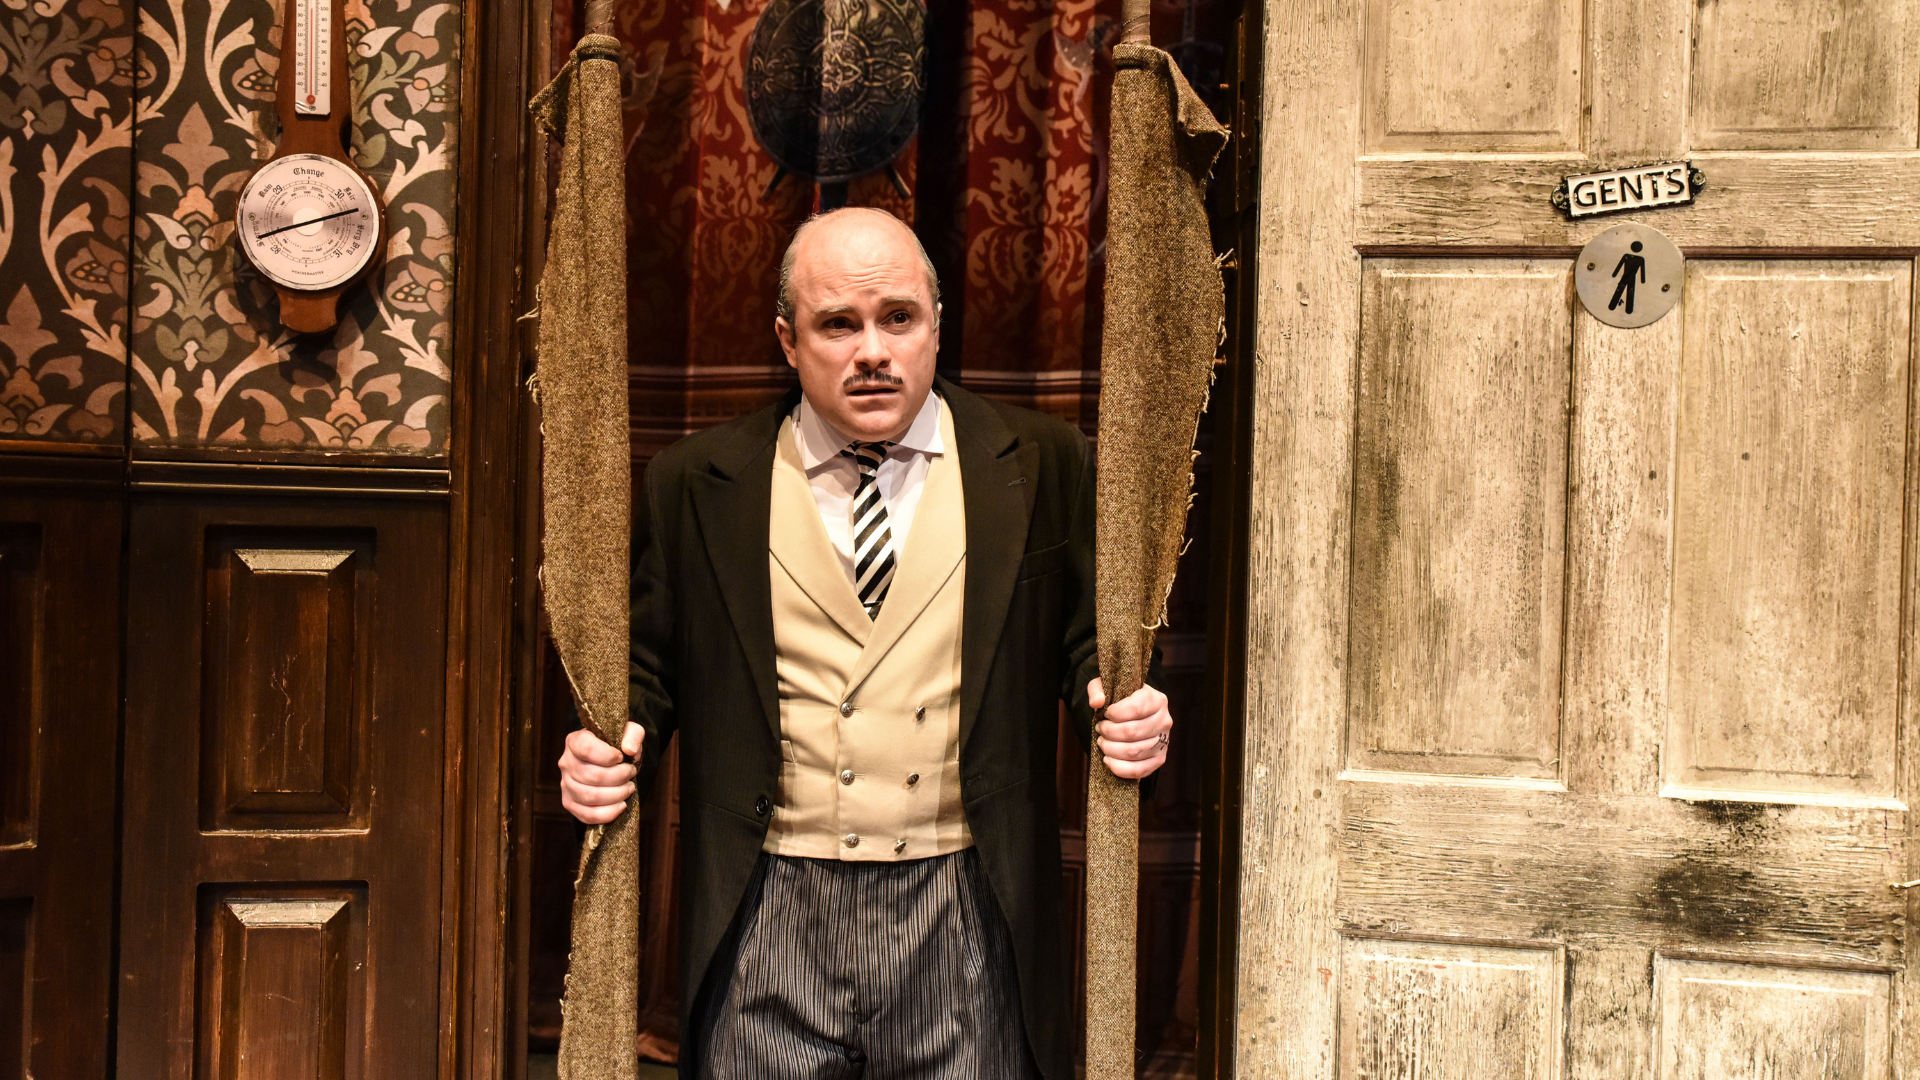 The Play That Goes Wrong Production Shot: A close up of Dennis (Edward Howells) who is holding 2 long rolls of fabric and is looking perplexed